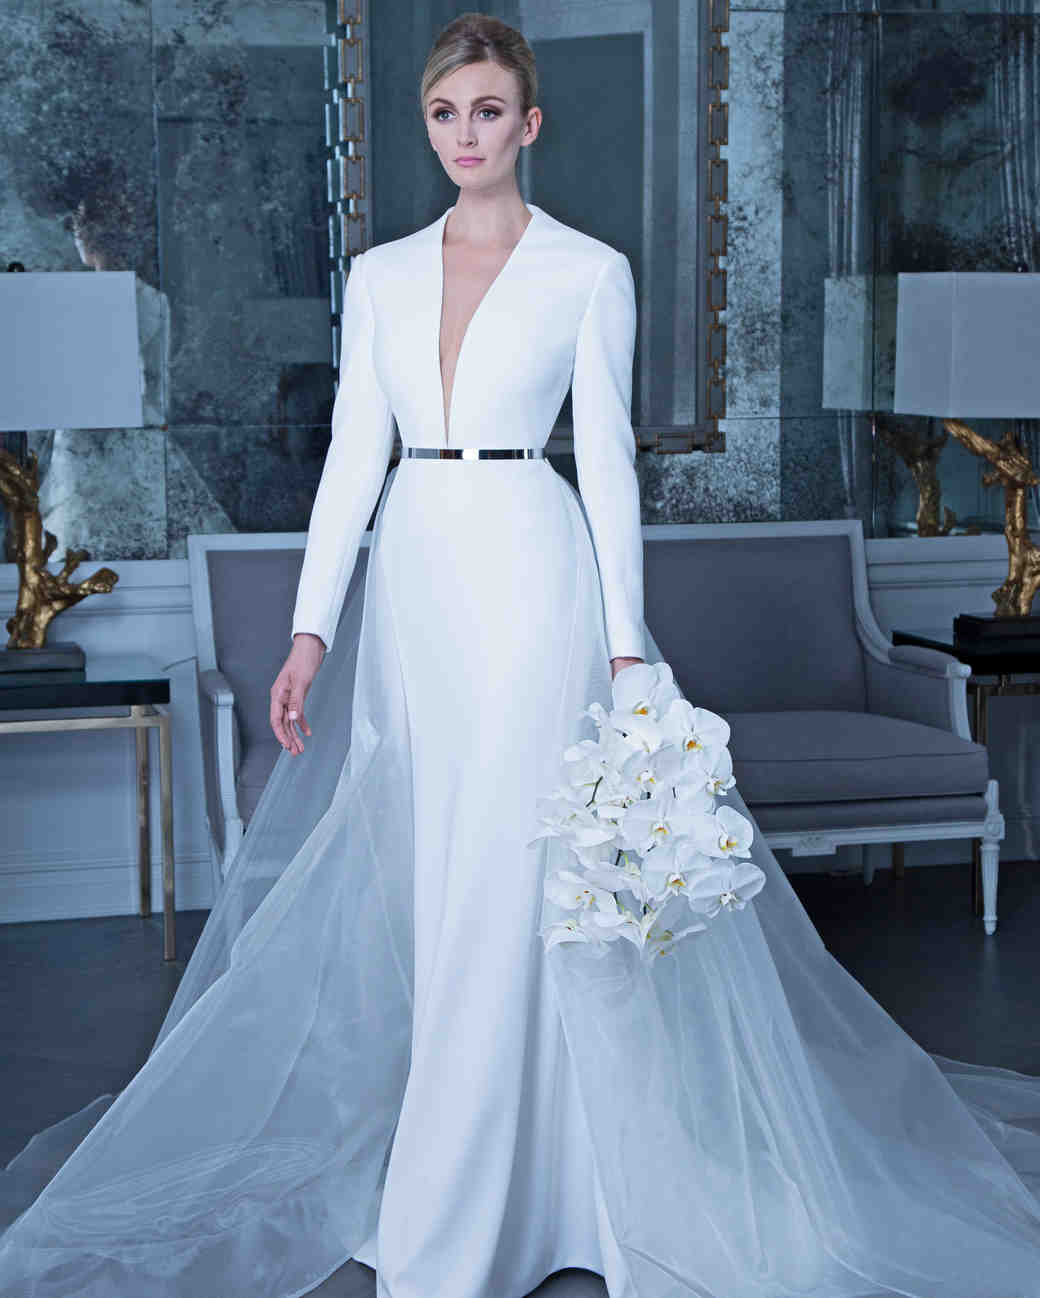 Romona long sleeve wedding dress with belt fall 2019